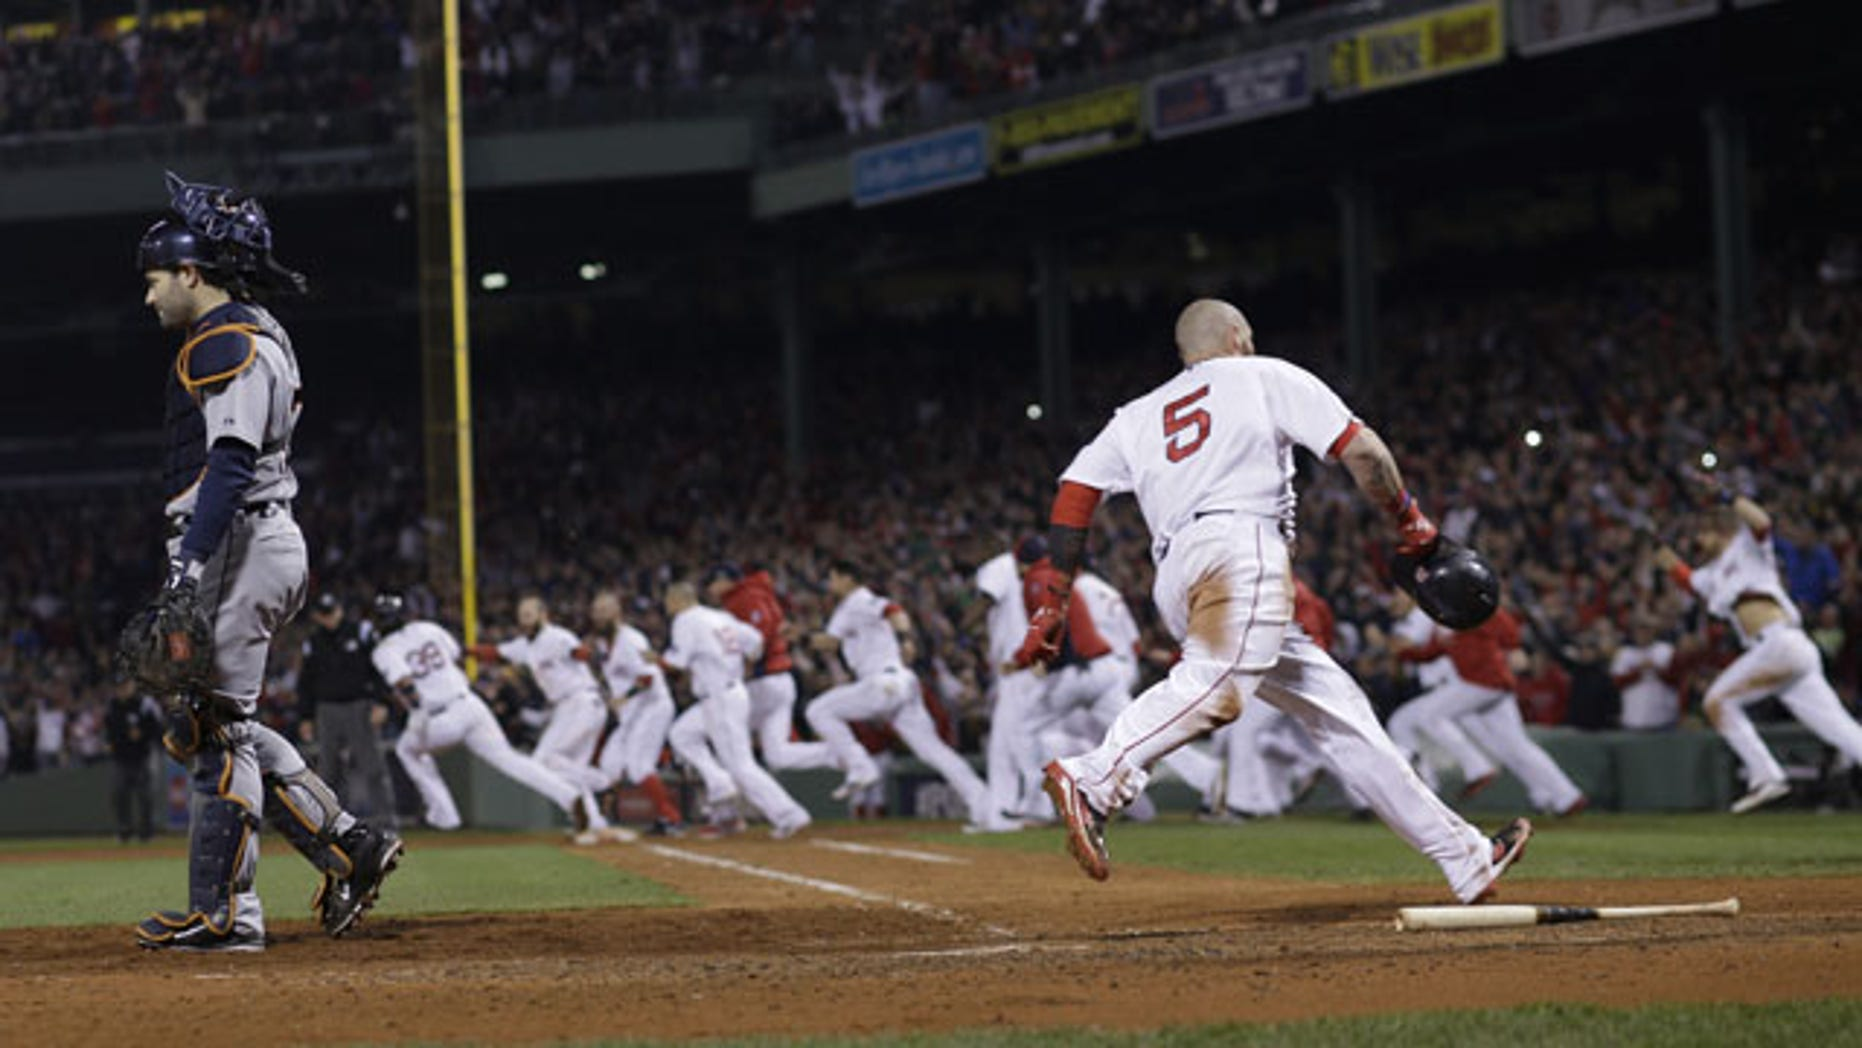 October 13, 2013: Boston Red Sox's Jonny Gomes scores the winning run on a hit by Jarrod Saltalamacchia during Game 2 of the American League baseball championship series against the Detroit Tigers Sunday in Boston. (AP Photo)